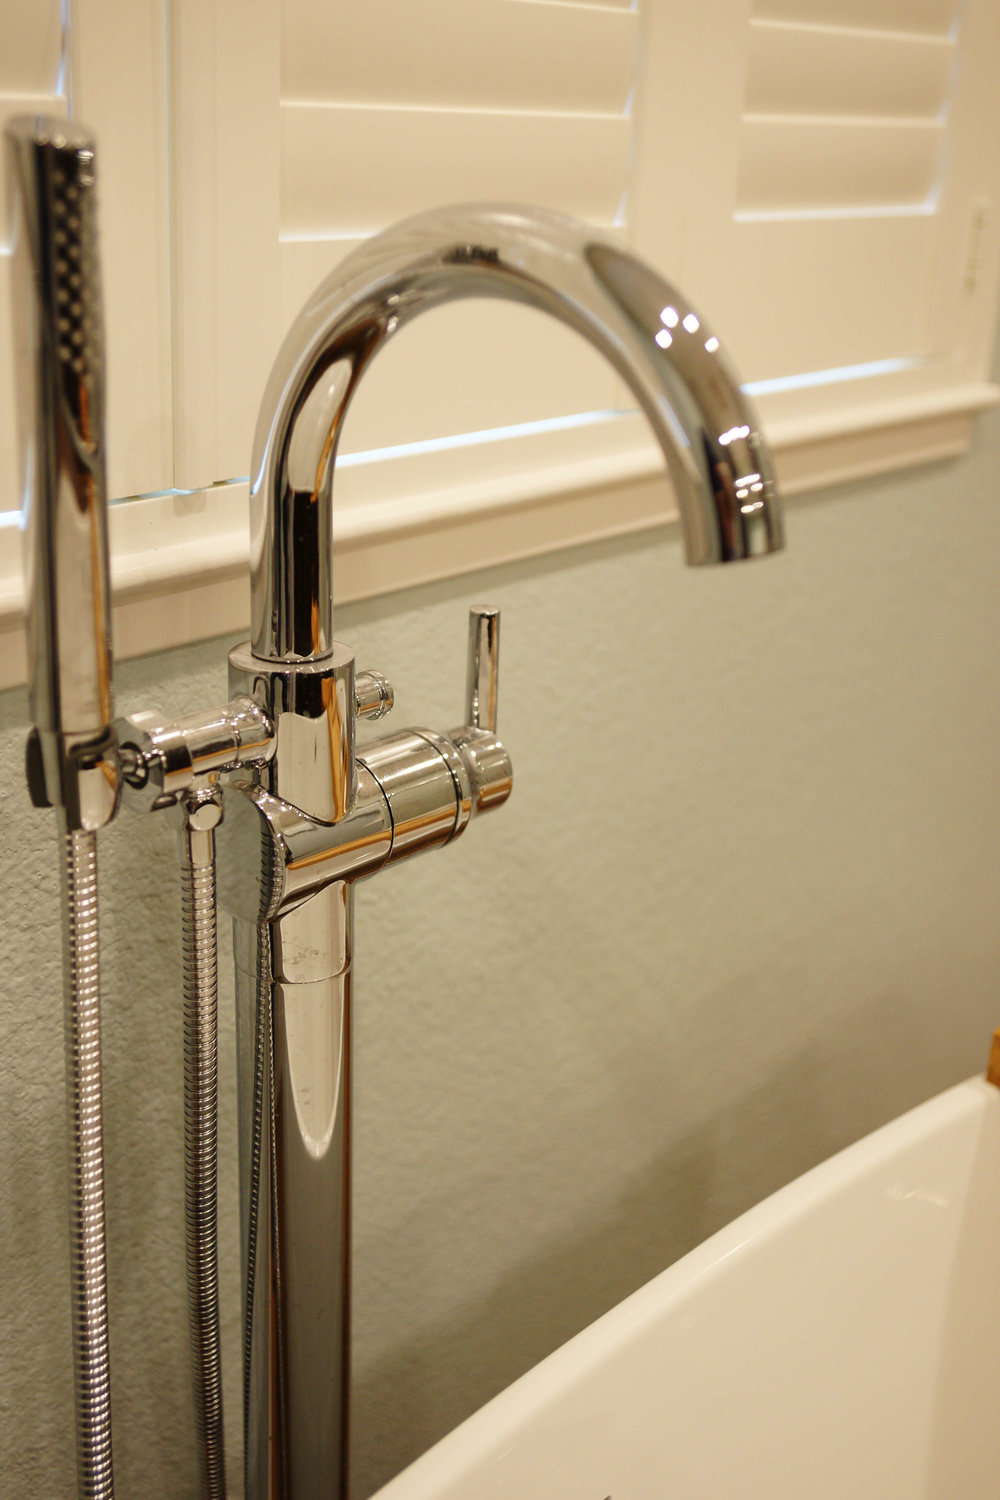 Design detail: Freestanding tub faucet with hand shower.